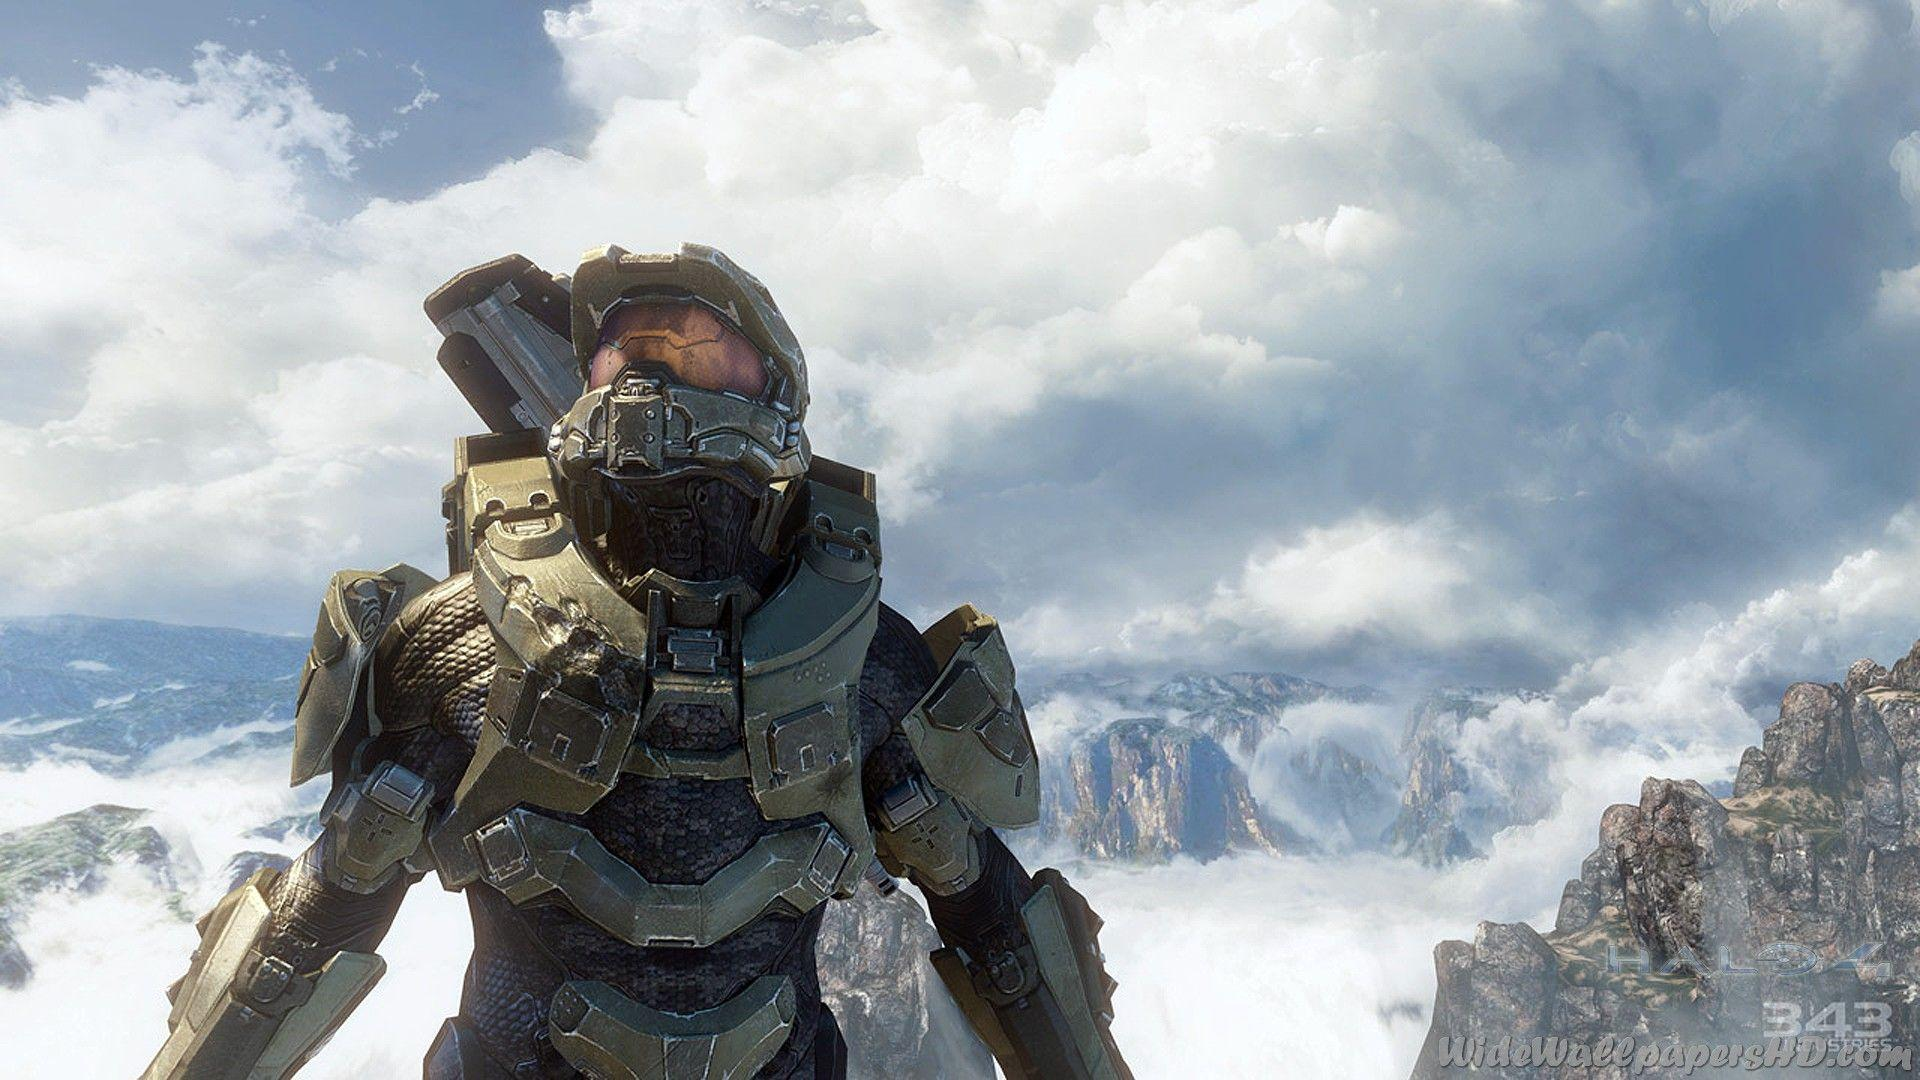 Halo Master Chief Wallpapers Wallpaper Cave